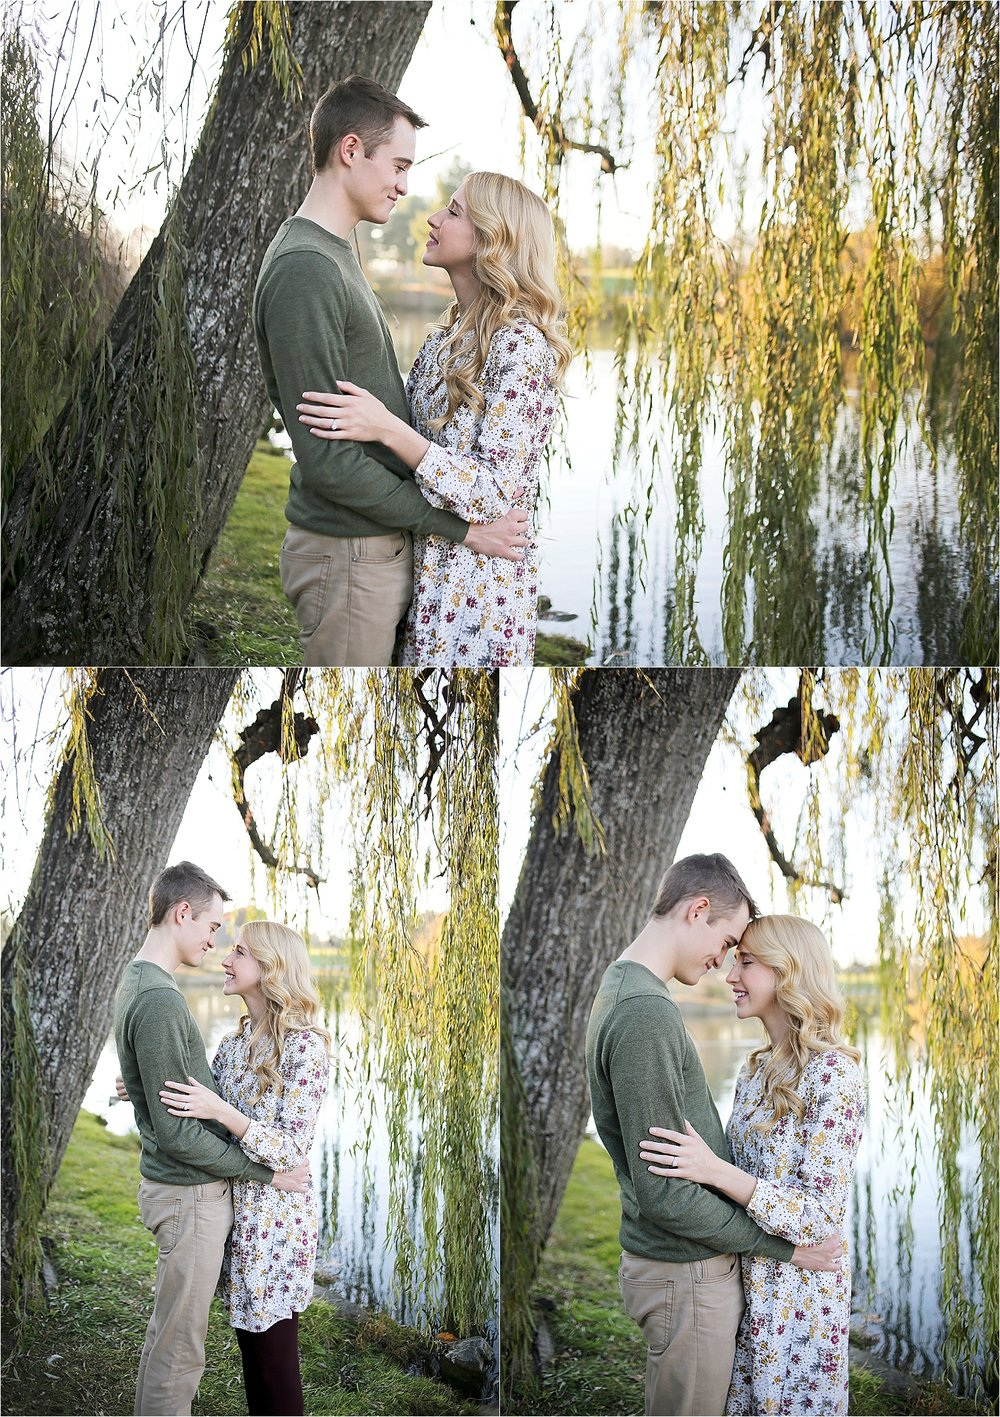 Blacksburg-Proposal-Engagement-Photographer_0029.jpg